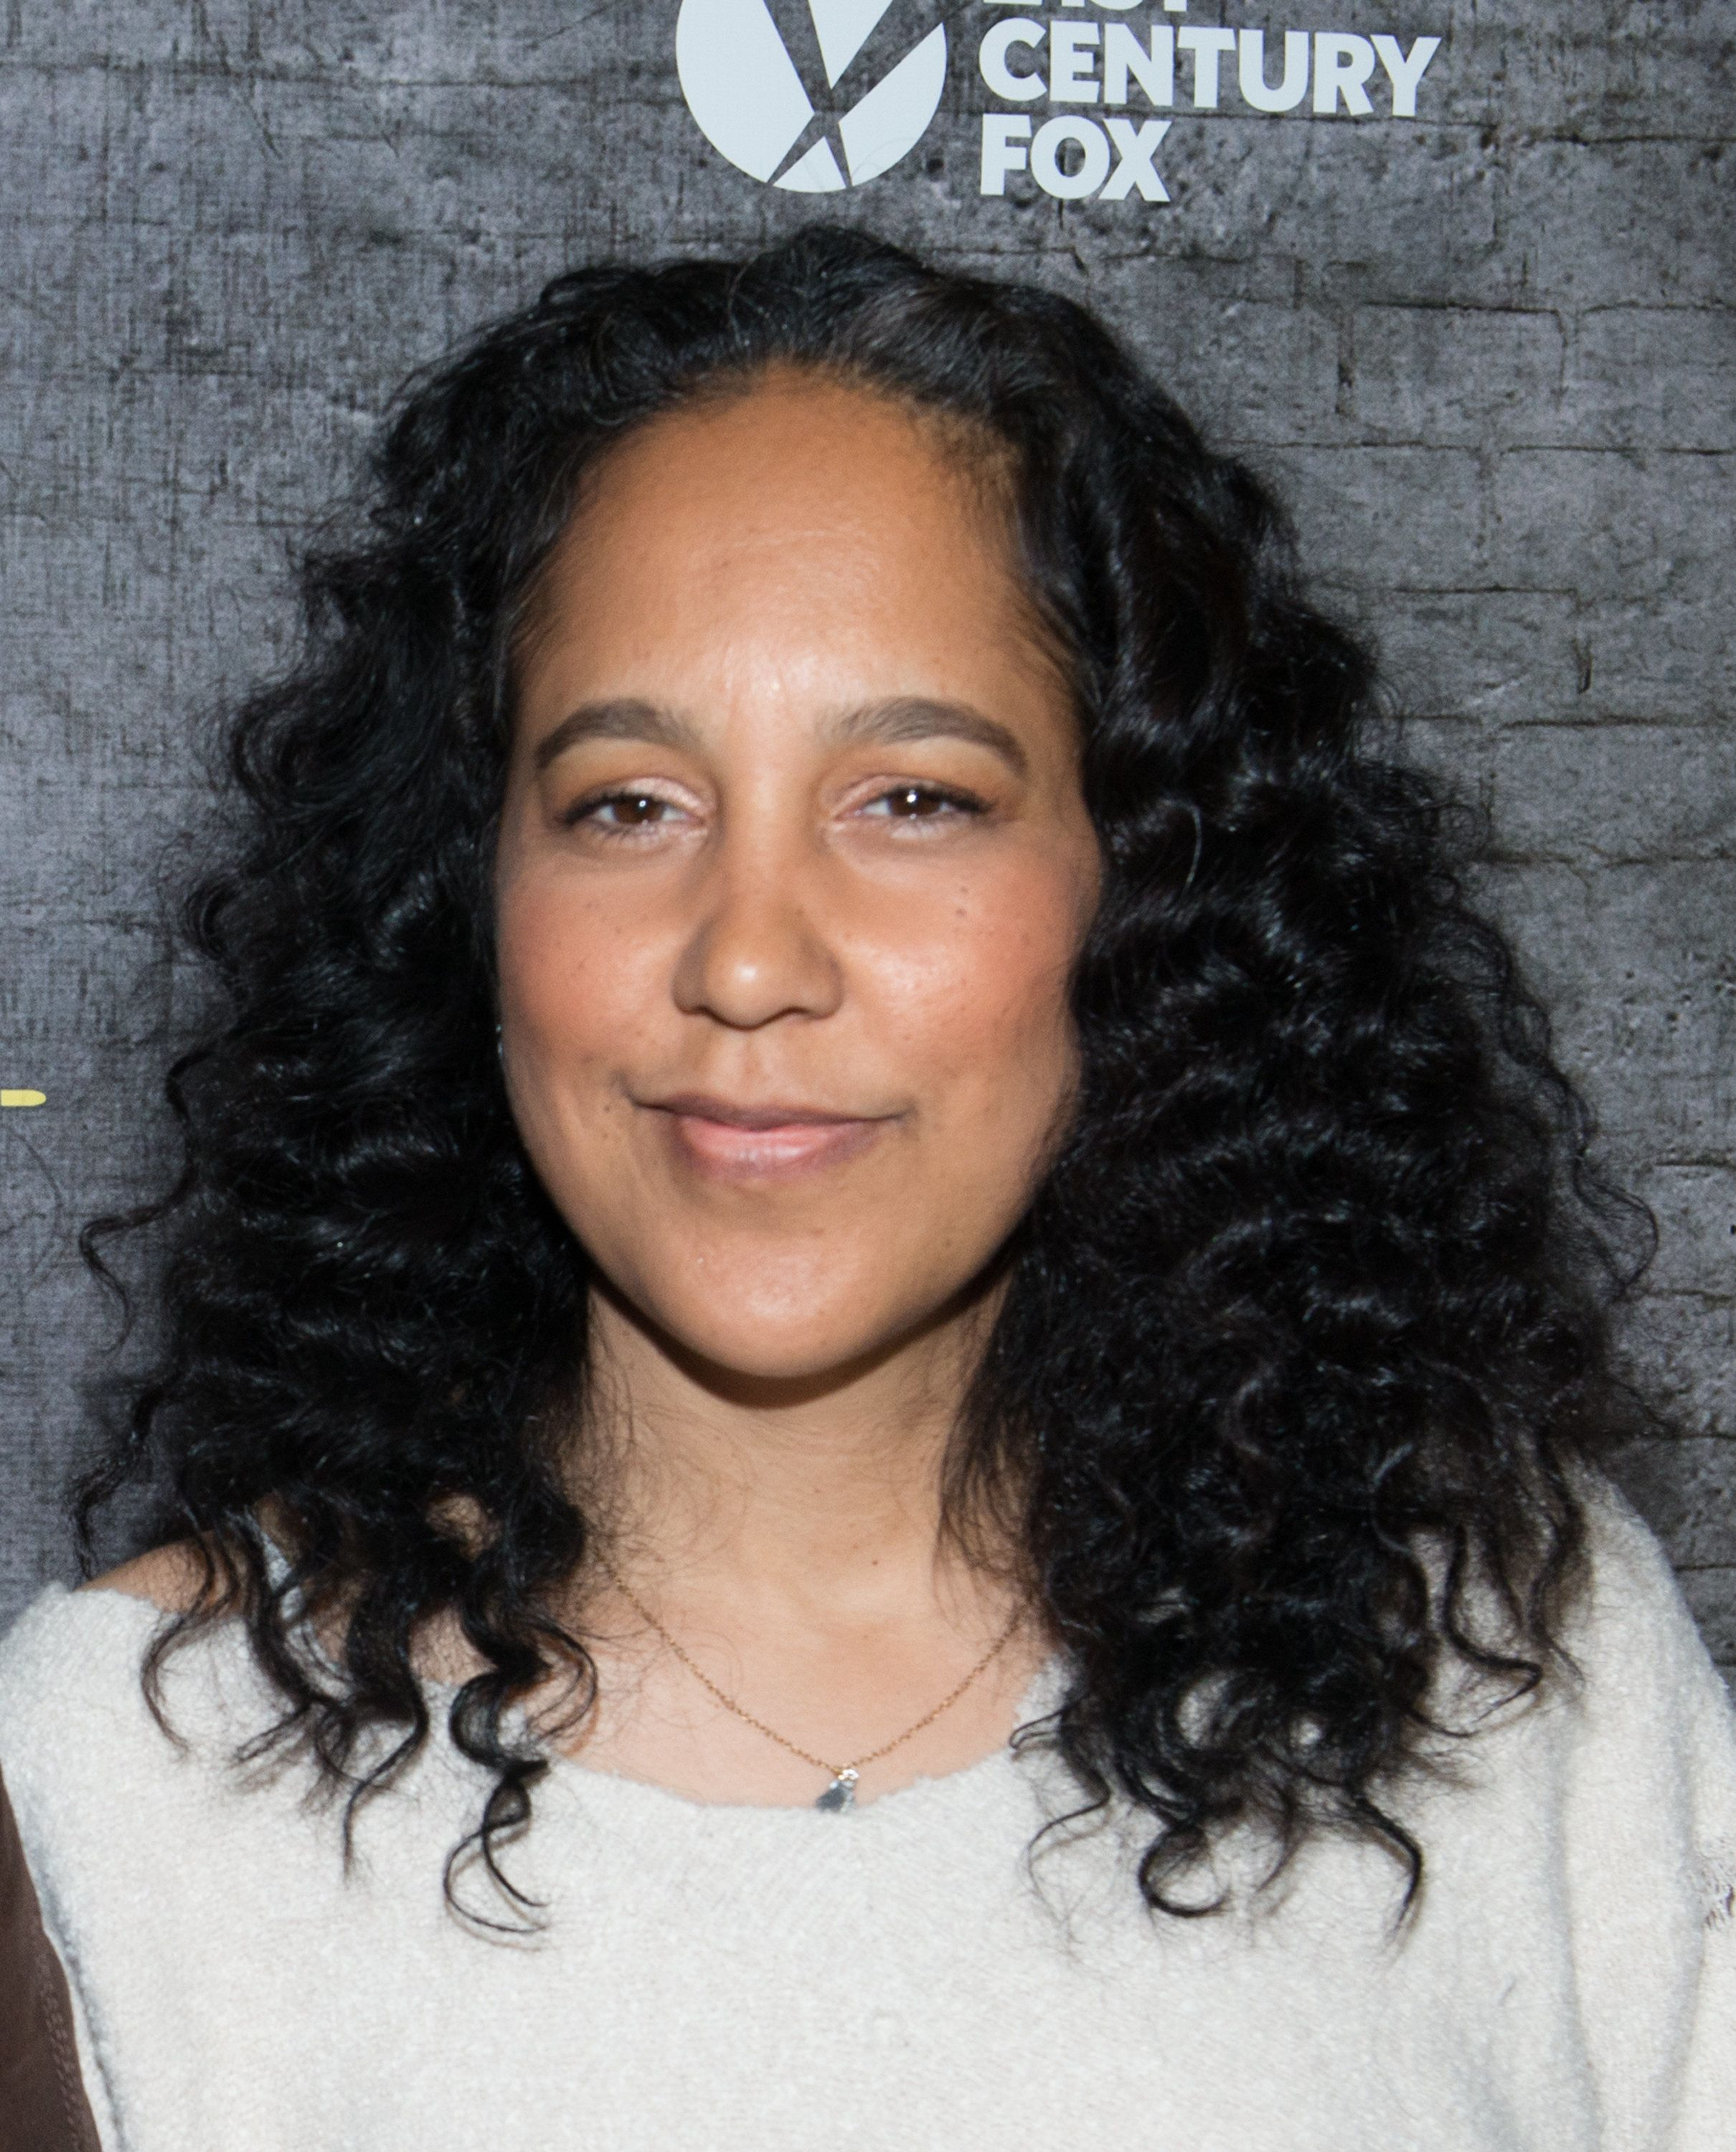 NEW YORK, NY - MARCH 09:  Gina Prince-Bythewood attends the 'Shots Fired' New York special screening at The Paley Center for Media on March 9, 2017 in New York City.  (Photo by Noam Galai/WireImage)